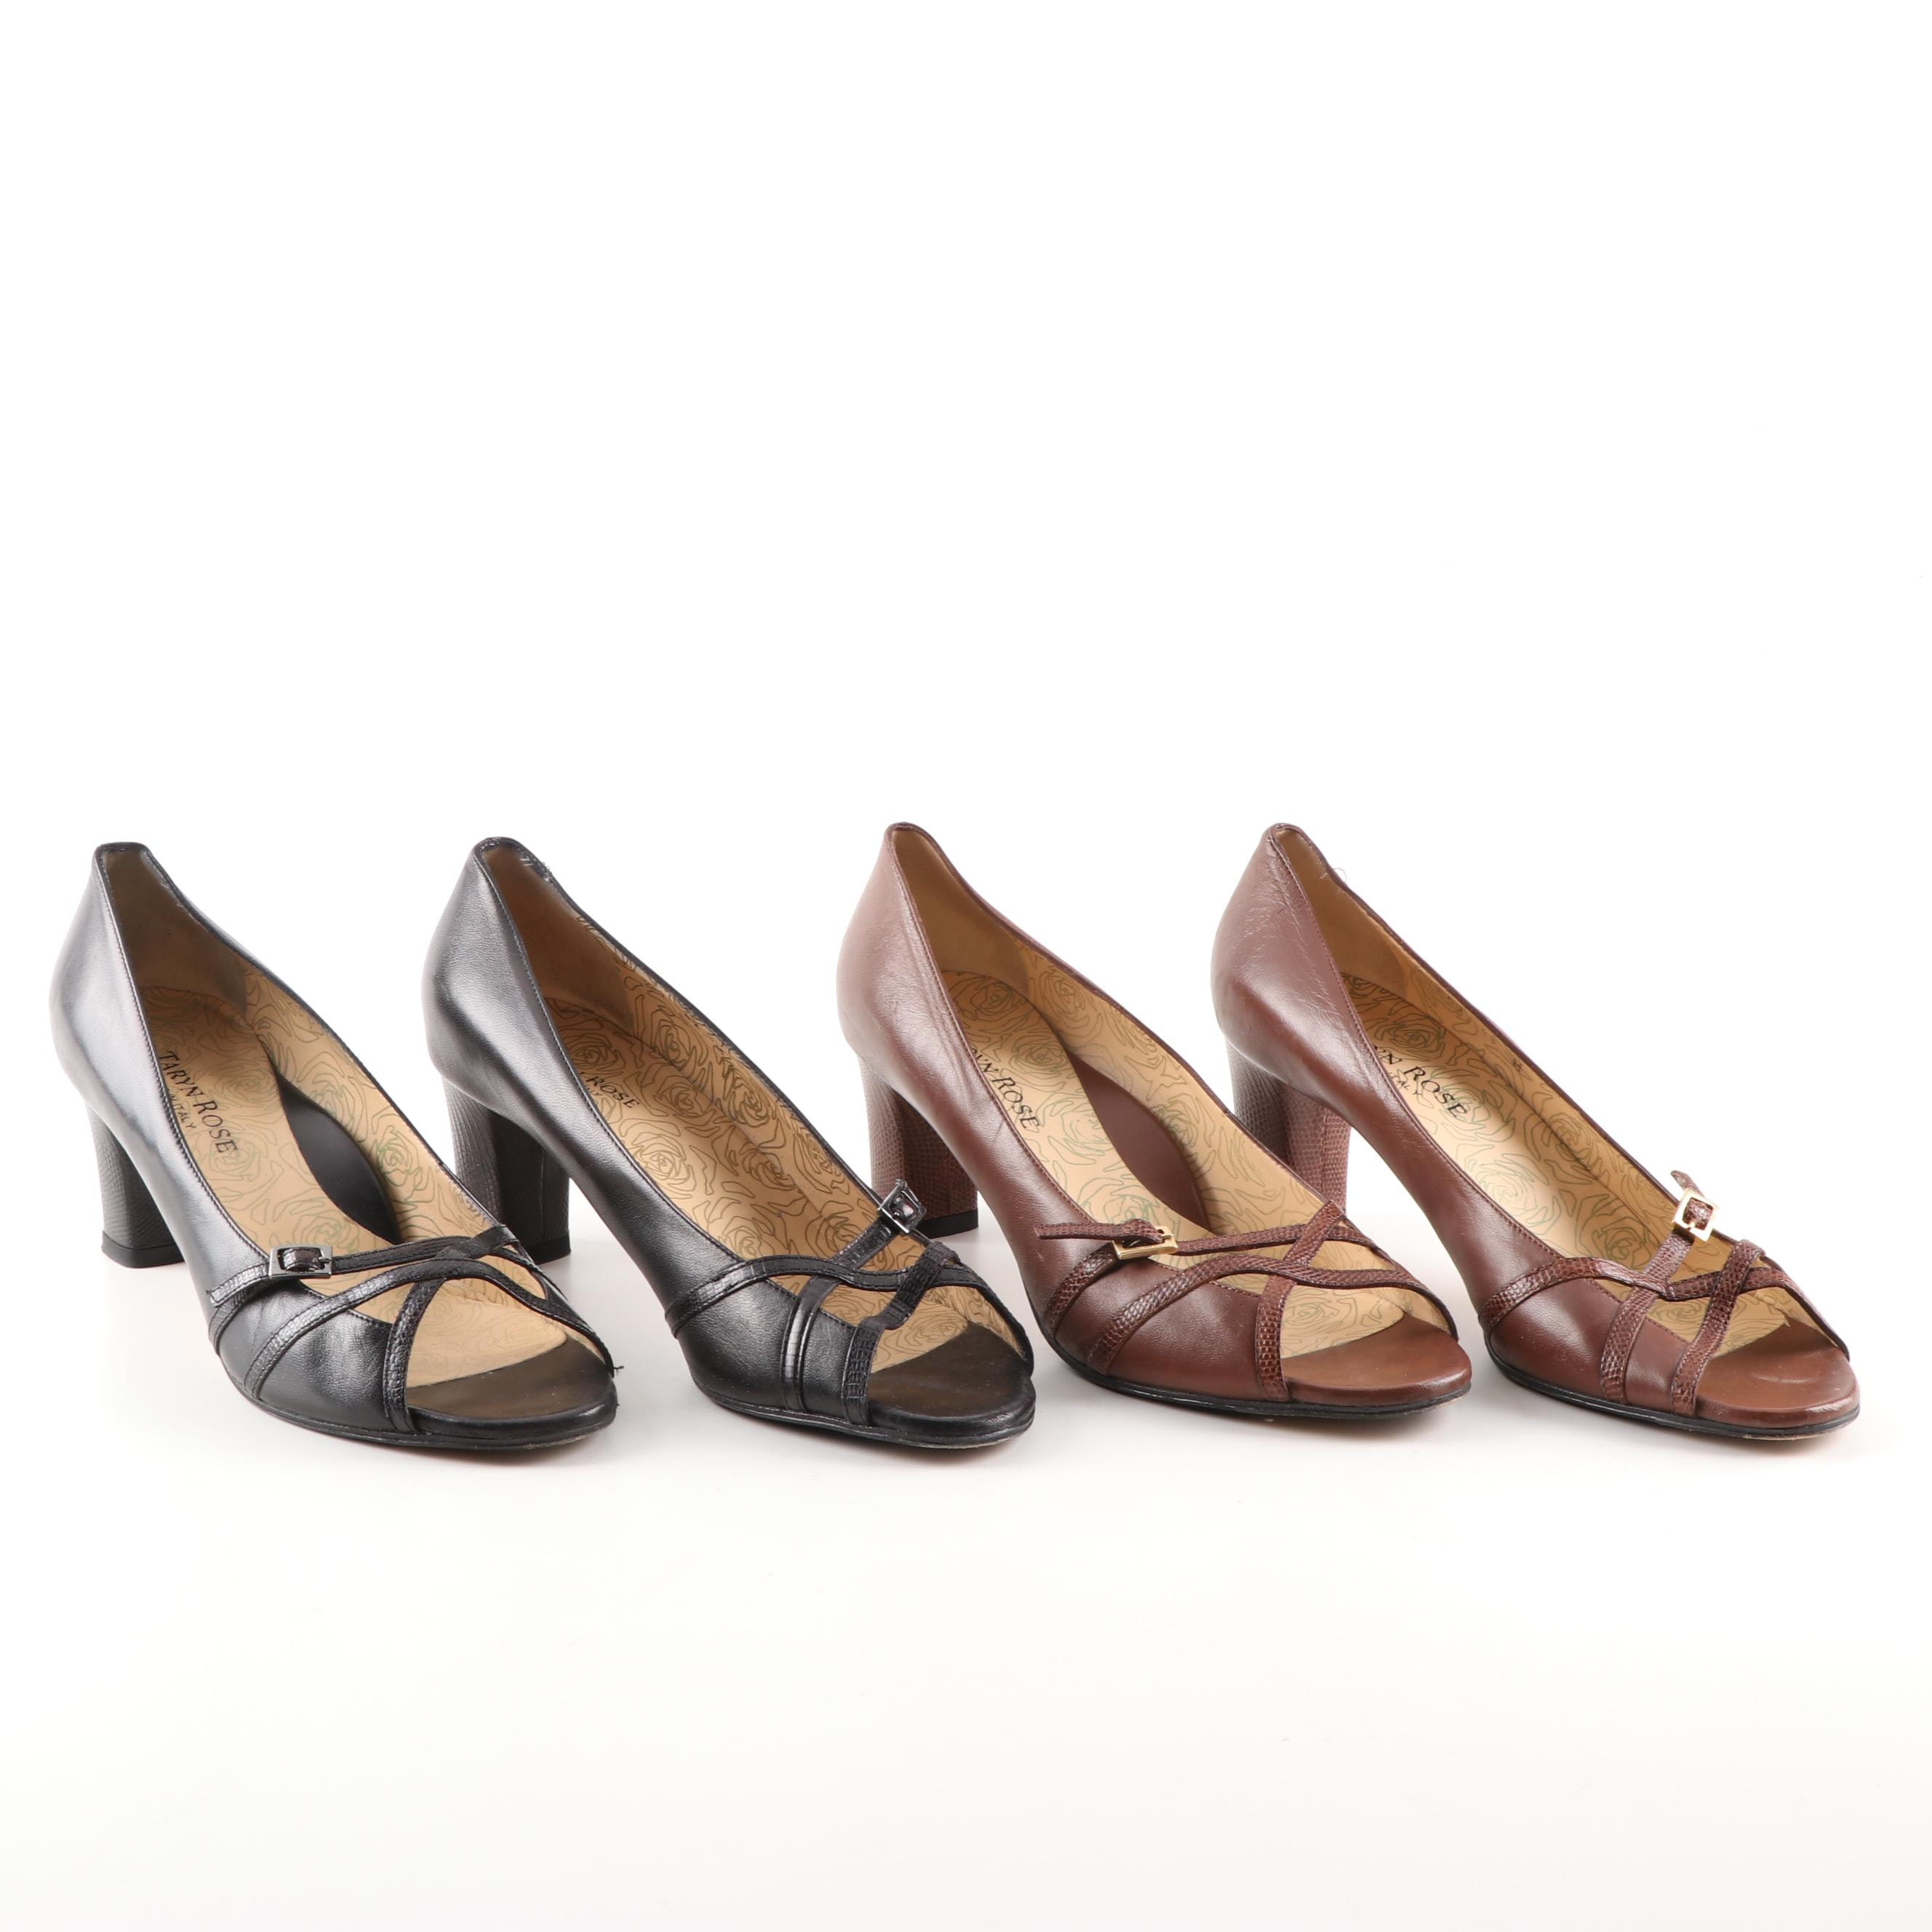 Taryn Rose Open Toe Black and Brown Leather Pumps